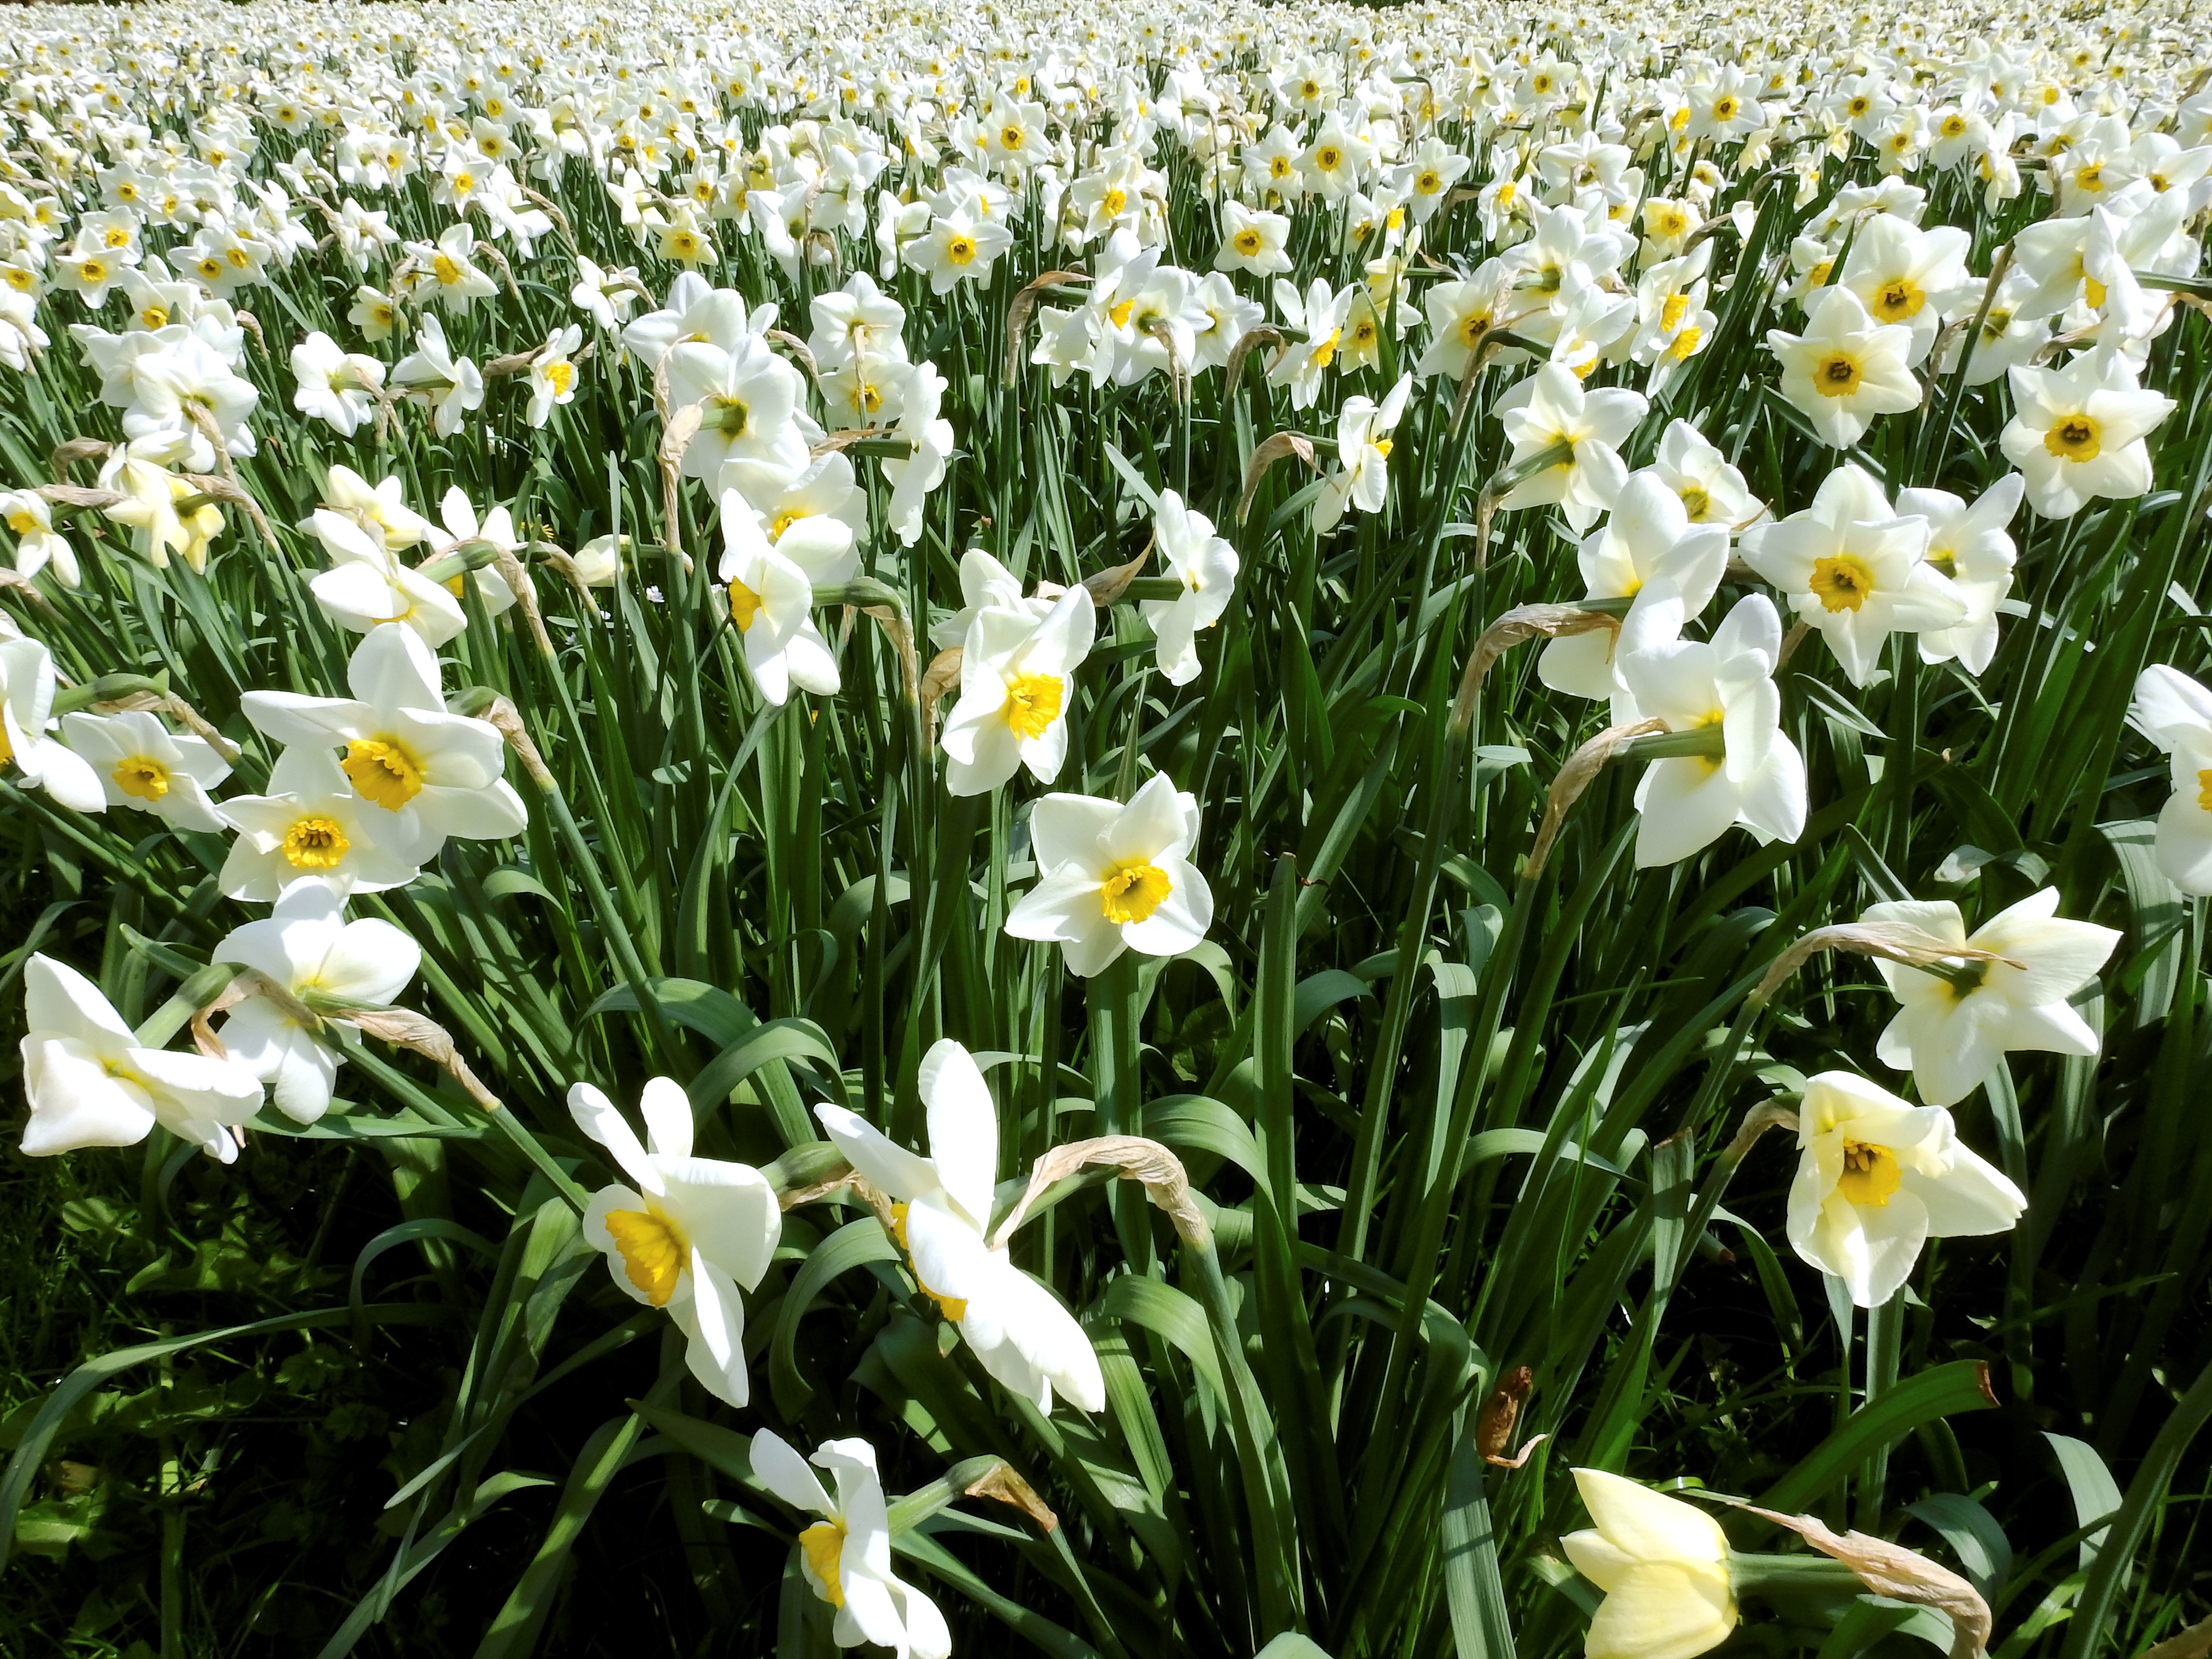 Field Of White Narcissus Flowers Free Image